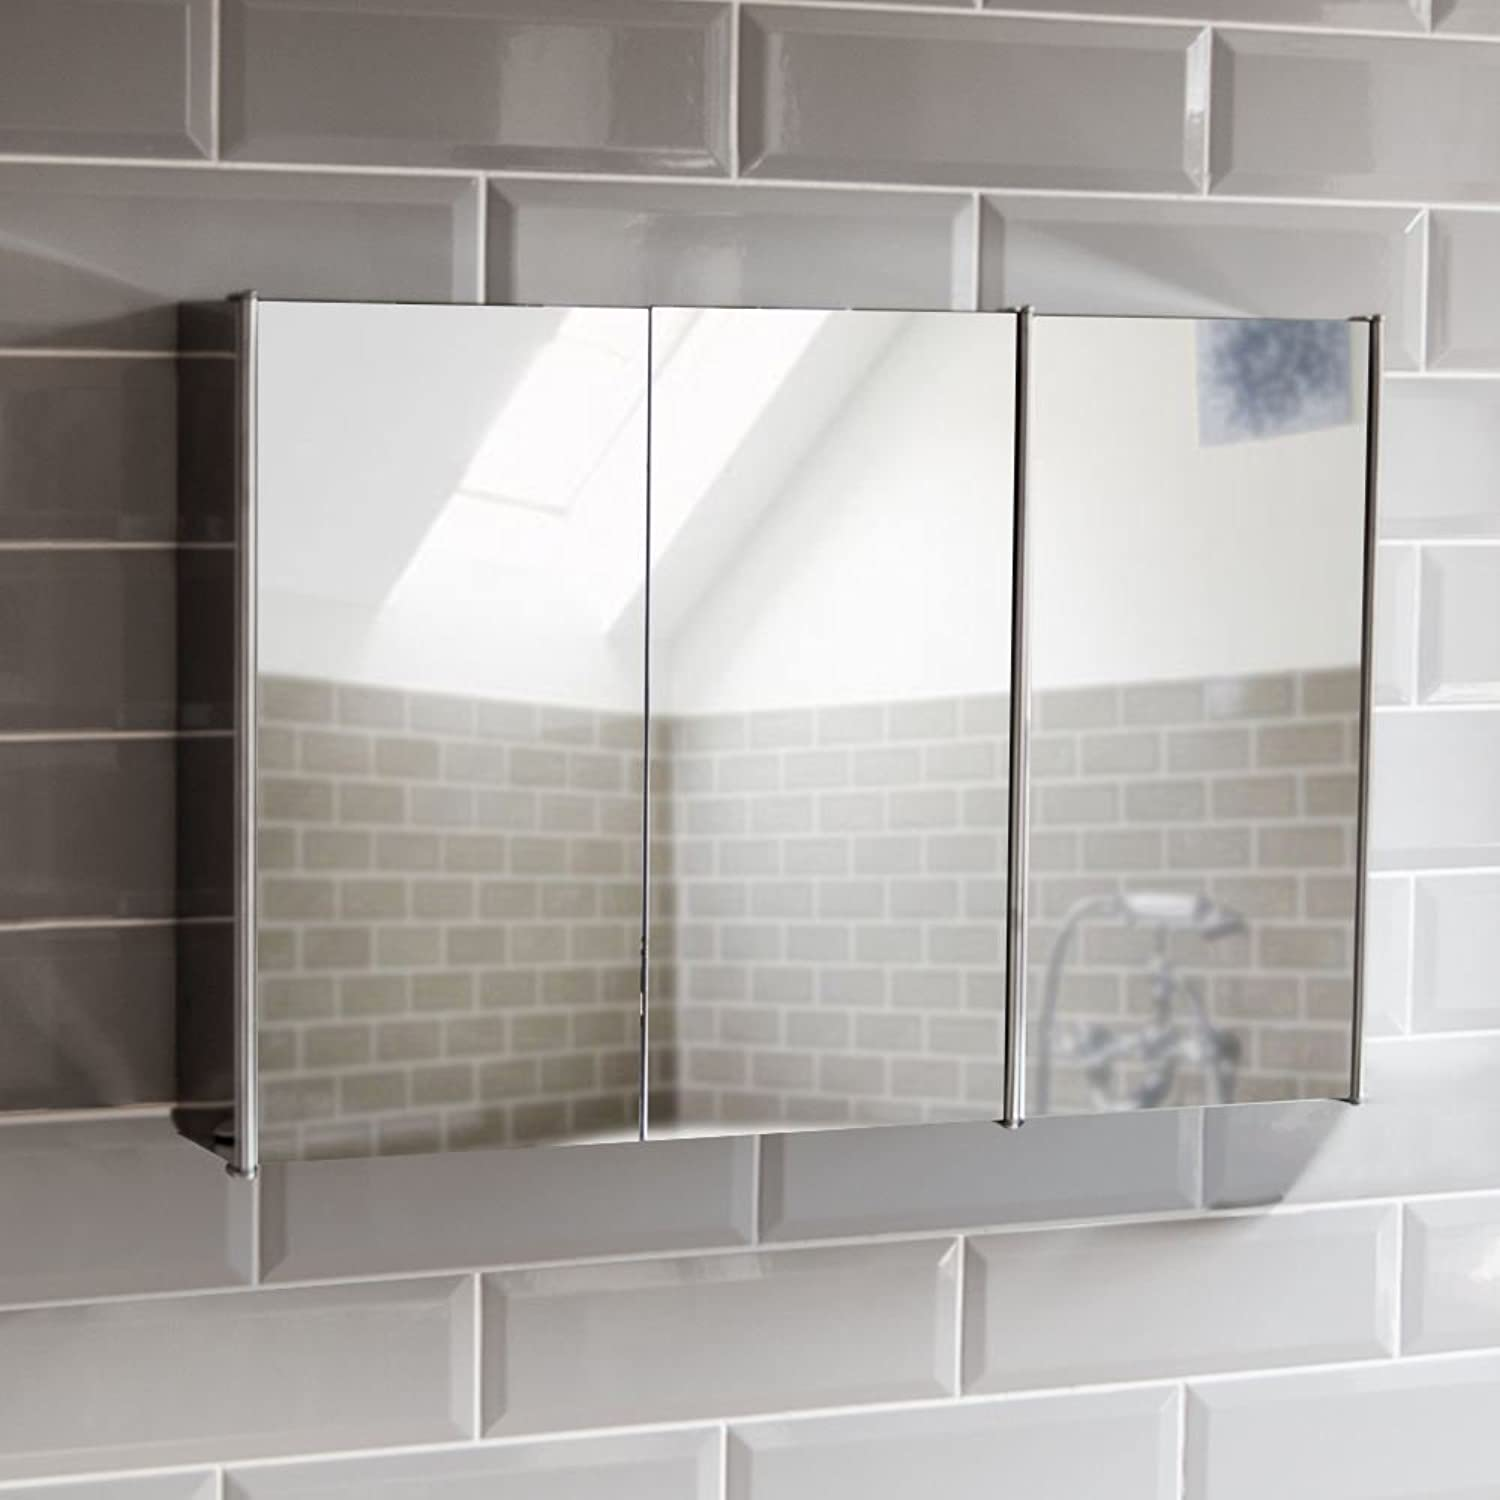 Home Tiano Bathroom Cabinet Triple Mirror Wall Mounted Stainless Steel Modern Storage Cupboard